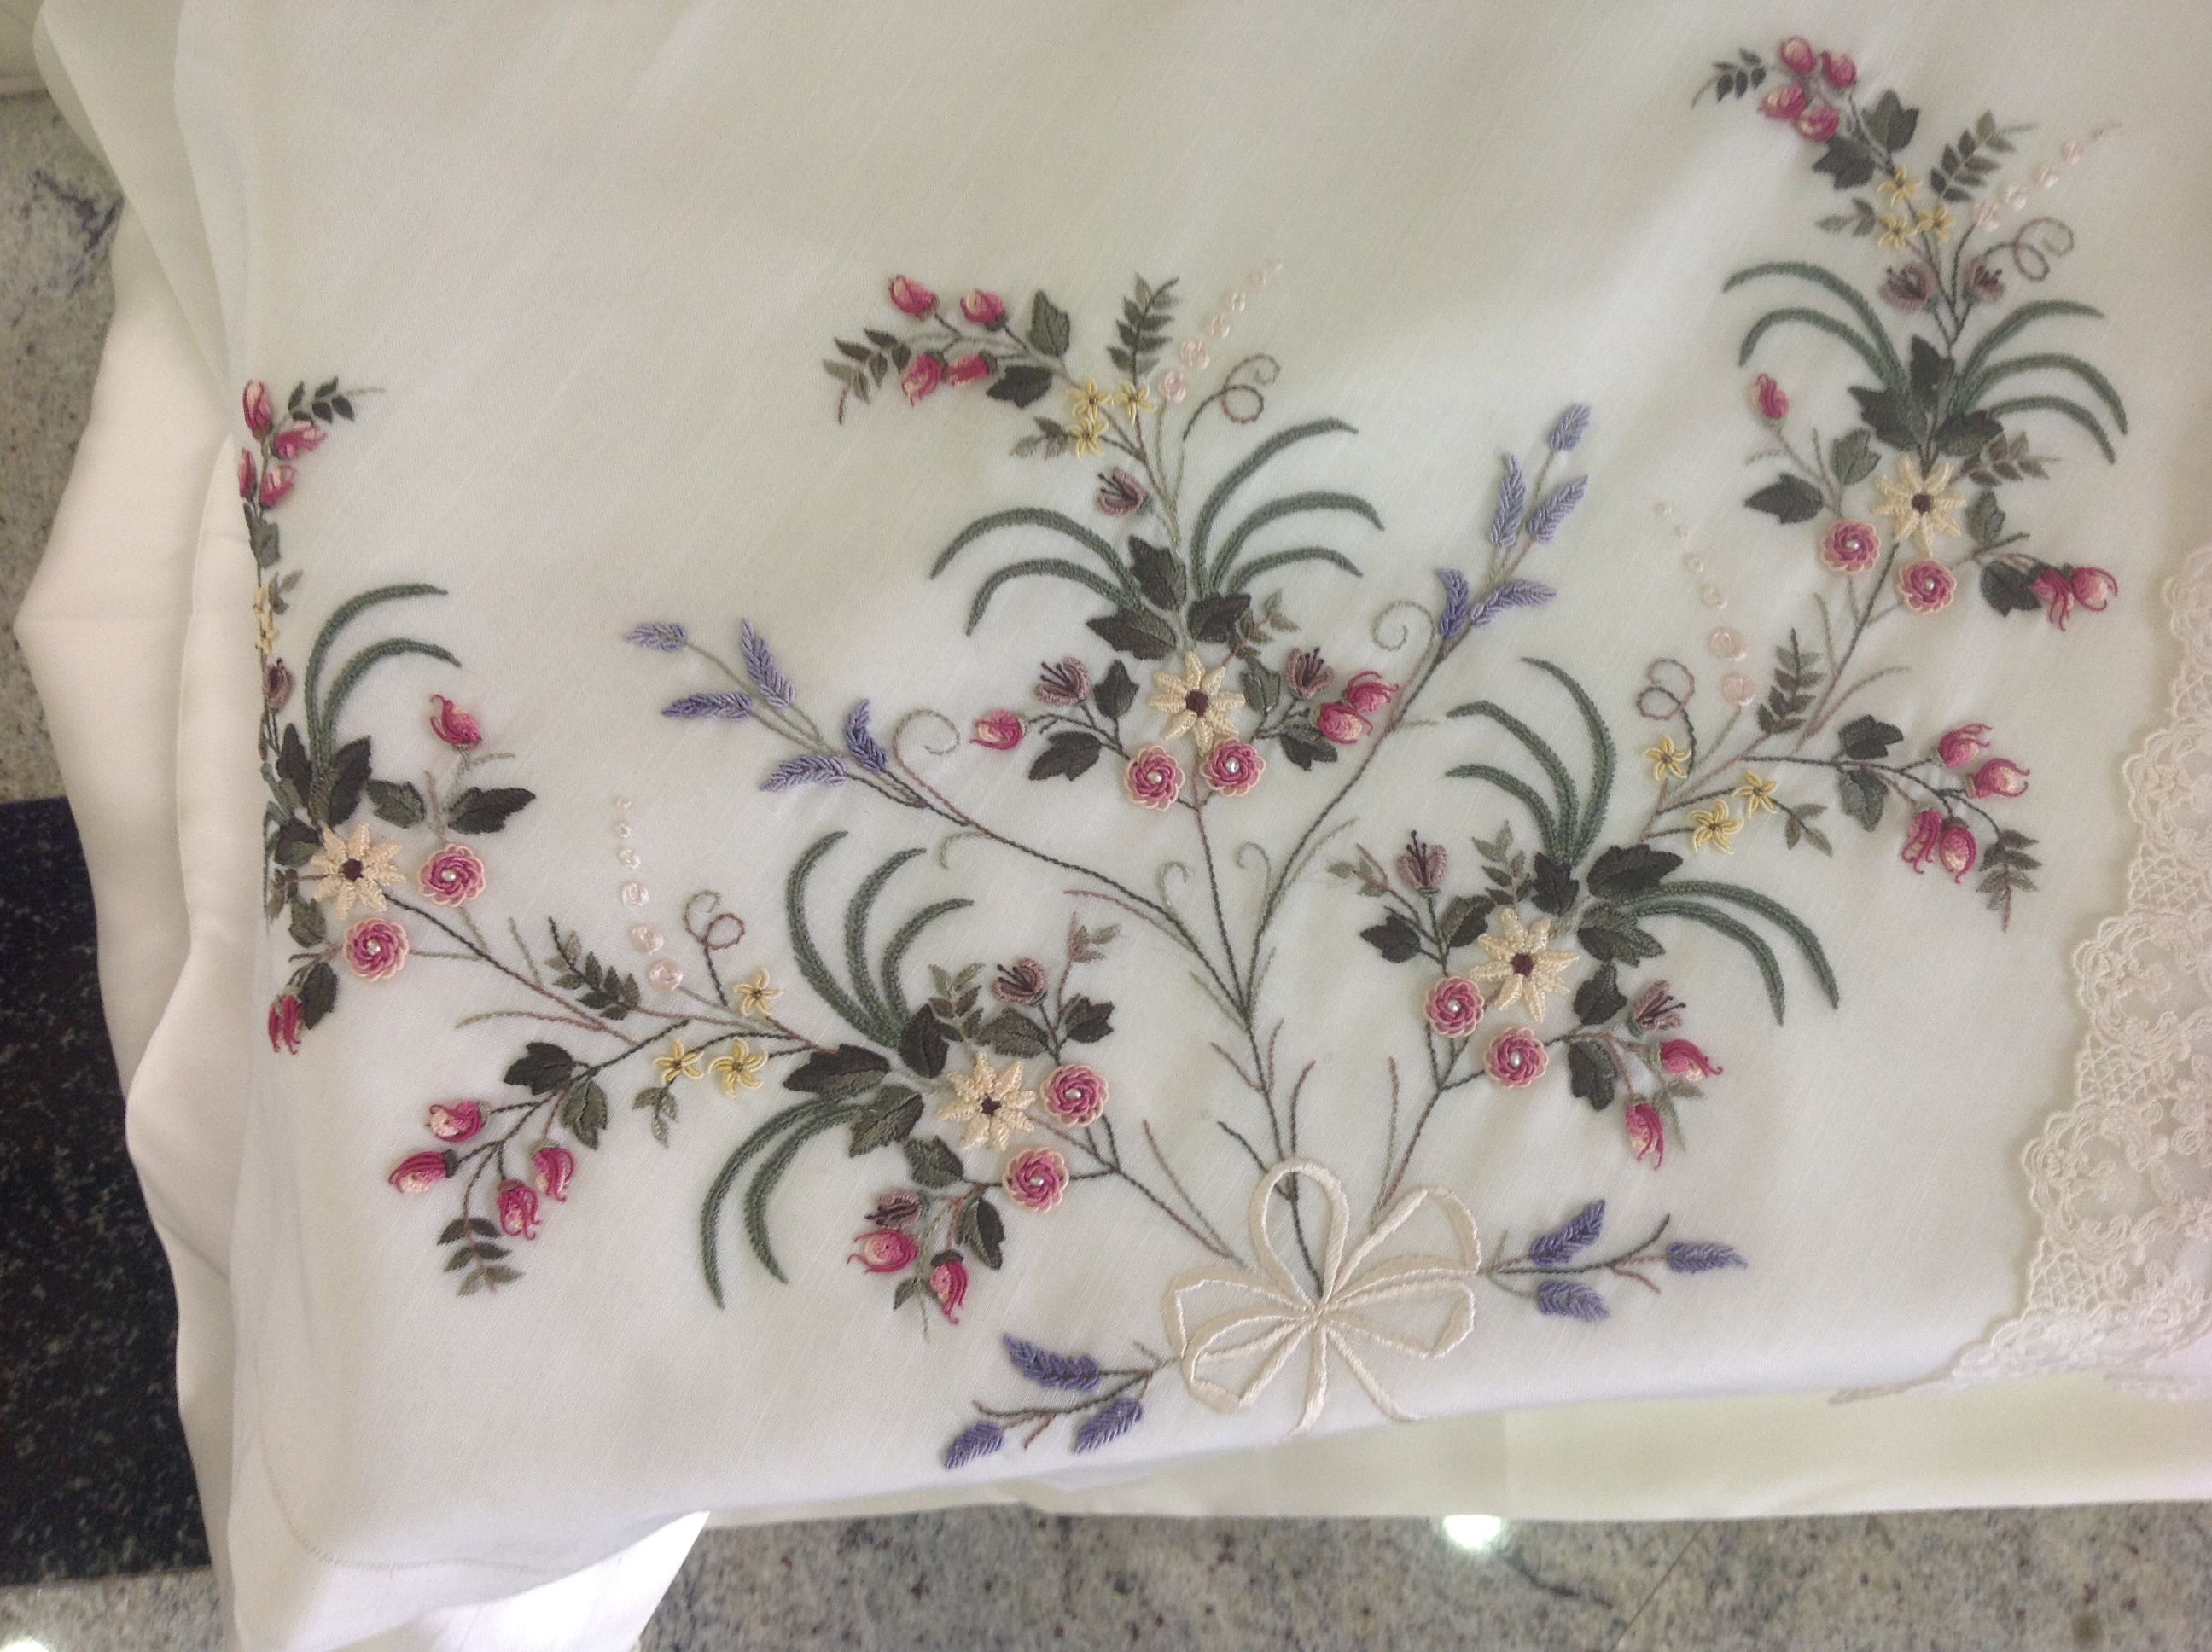 Ribbon embroidery bedspread designs - Brazilian Embroidery Project By Beyza Erg Ney From Istanbul Turkey